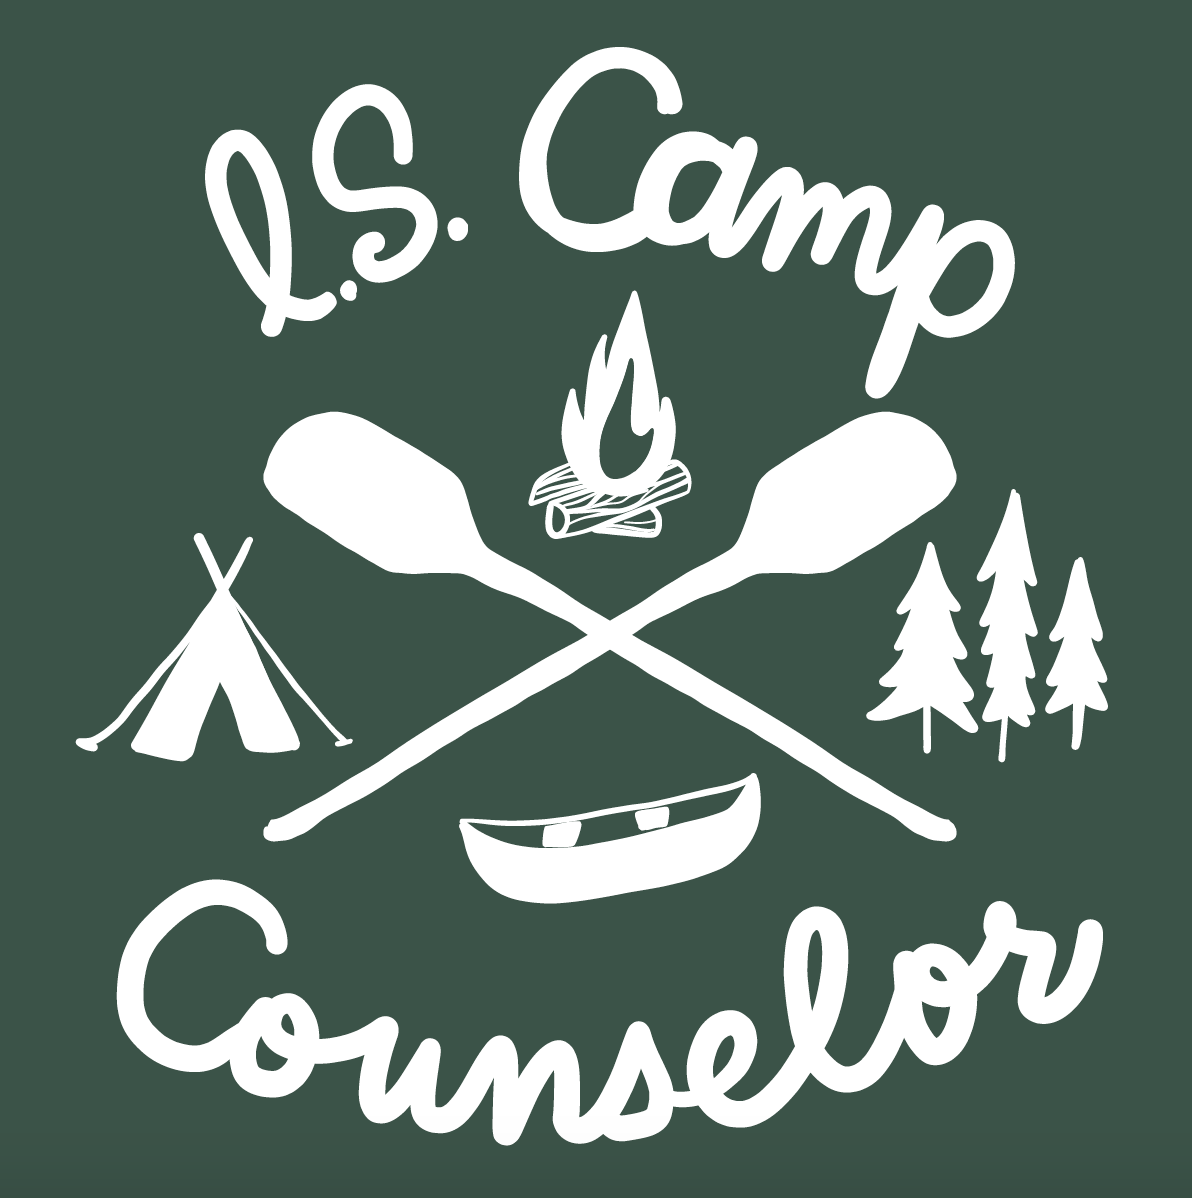 Information Services Camp Tee Shirt Illustration